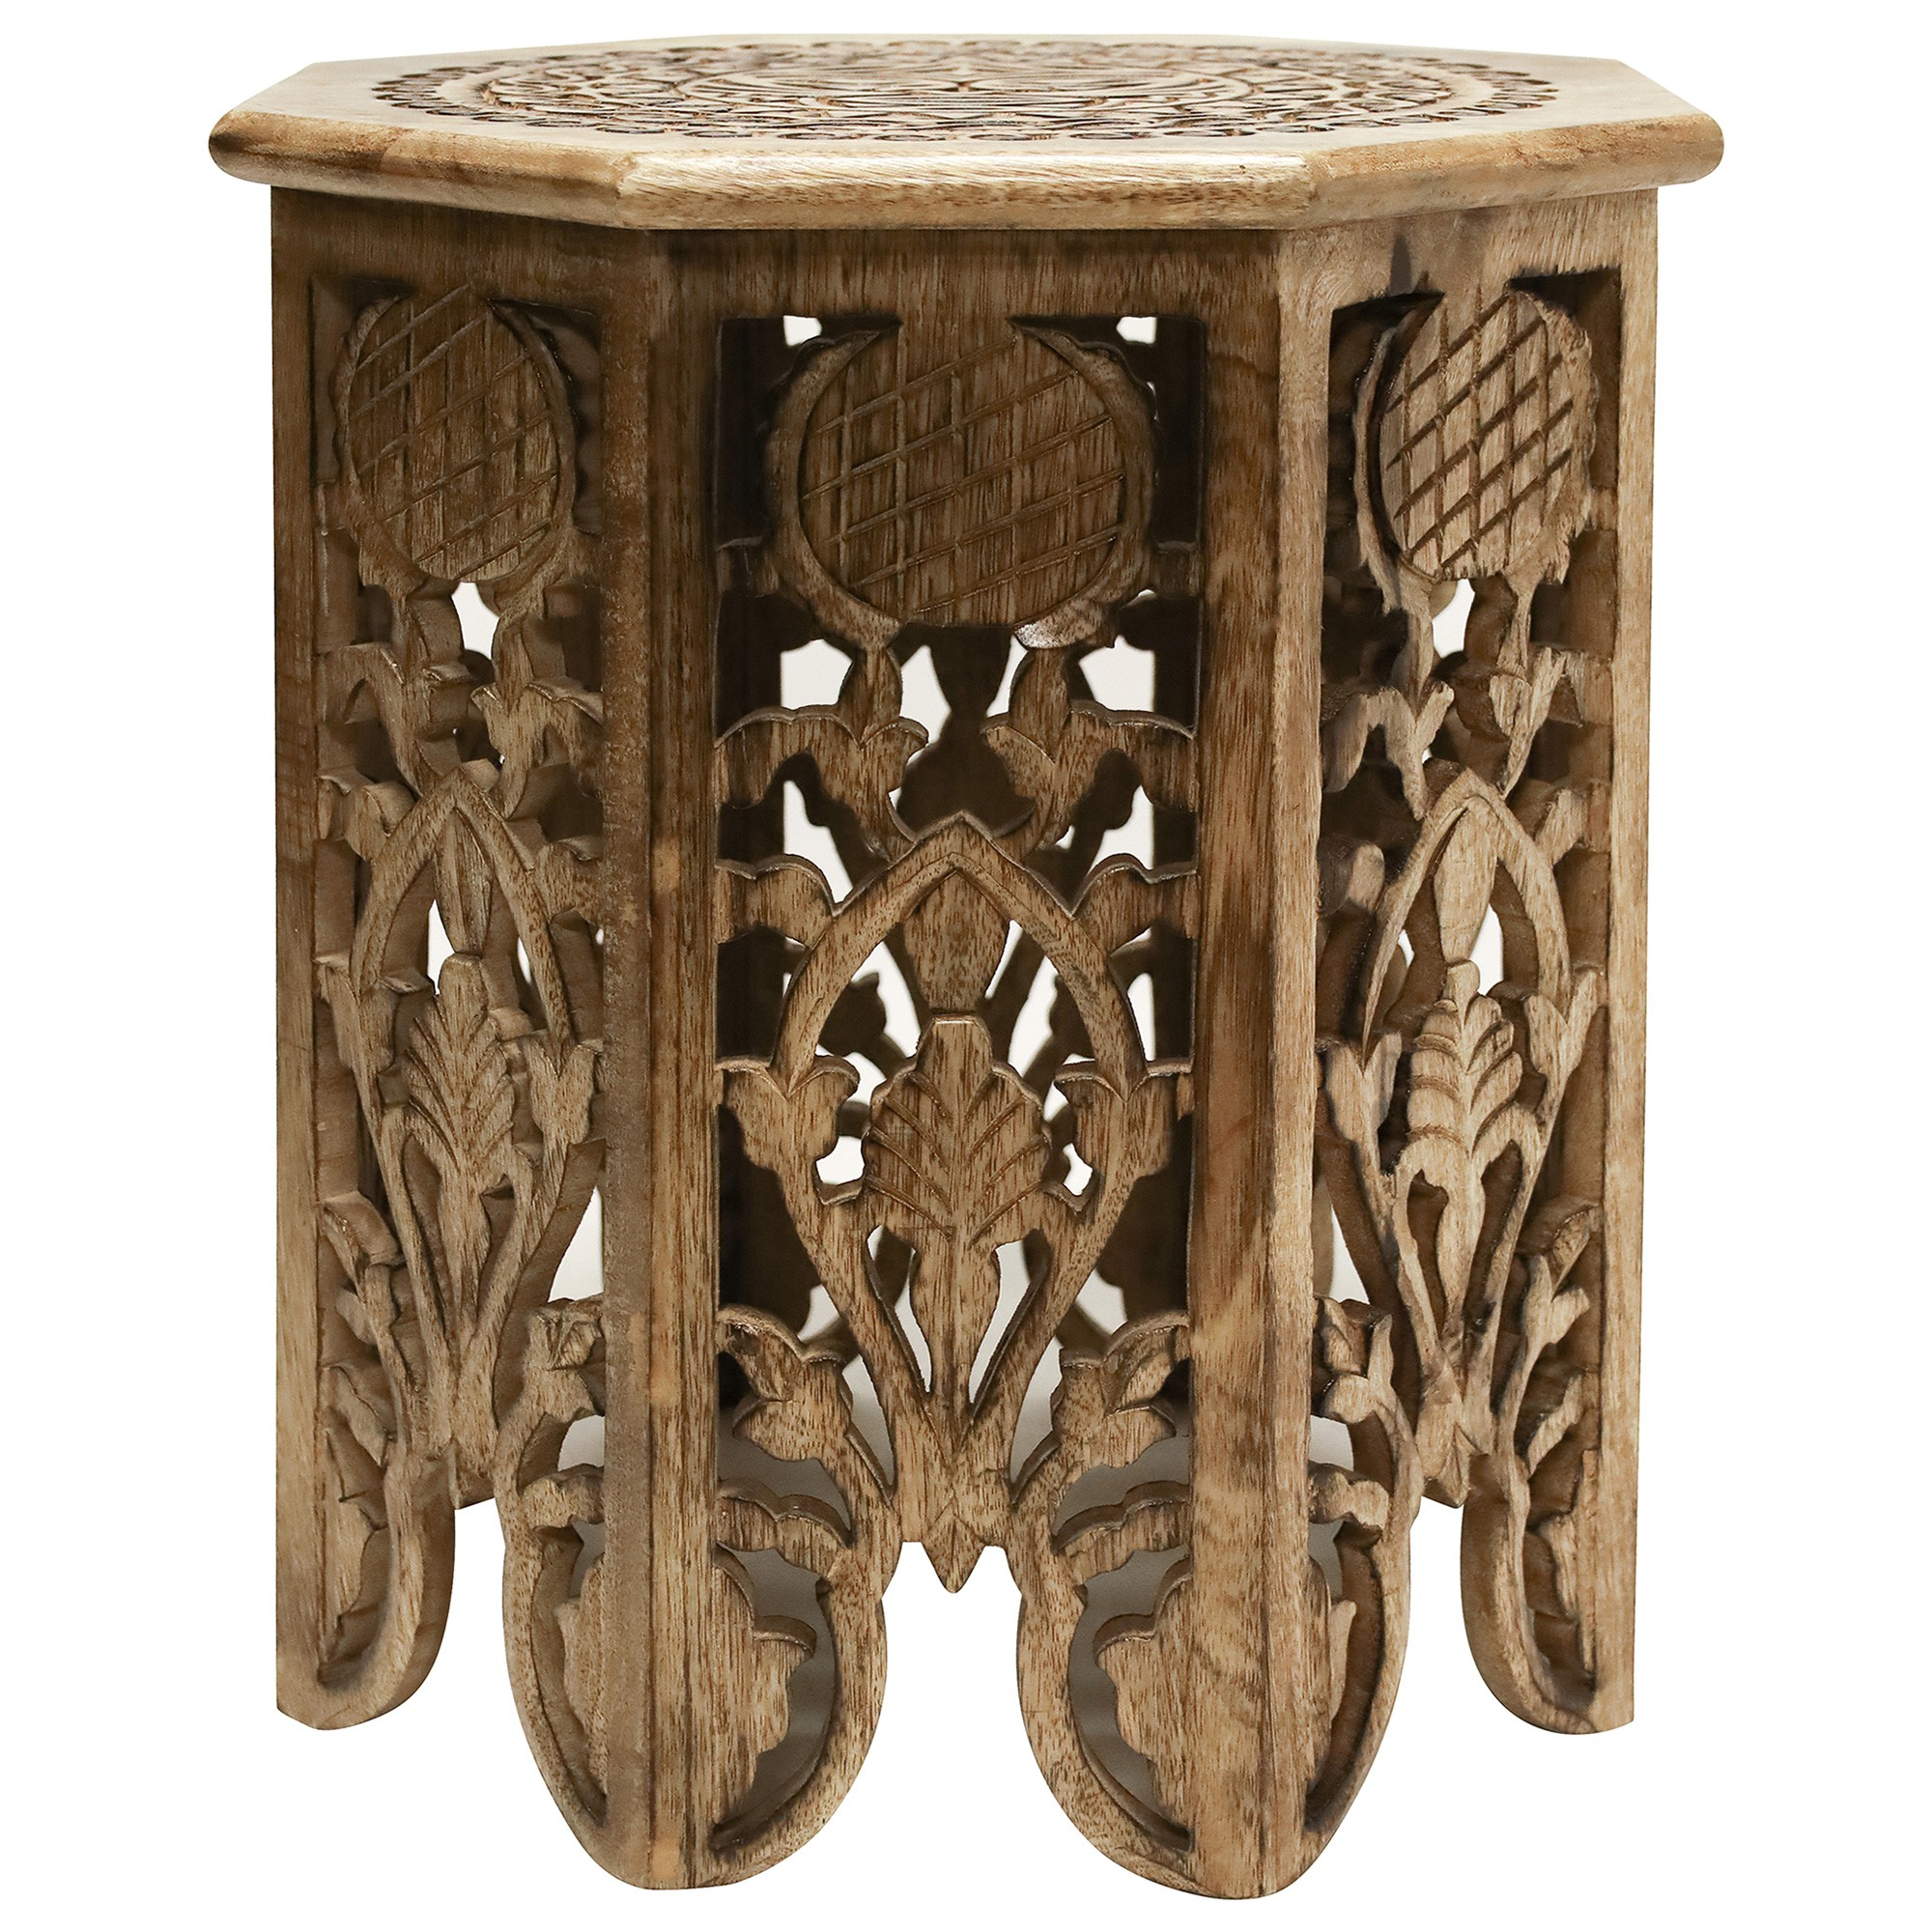 Chawla Carved Mango Wood Round Side Table